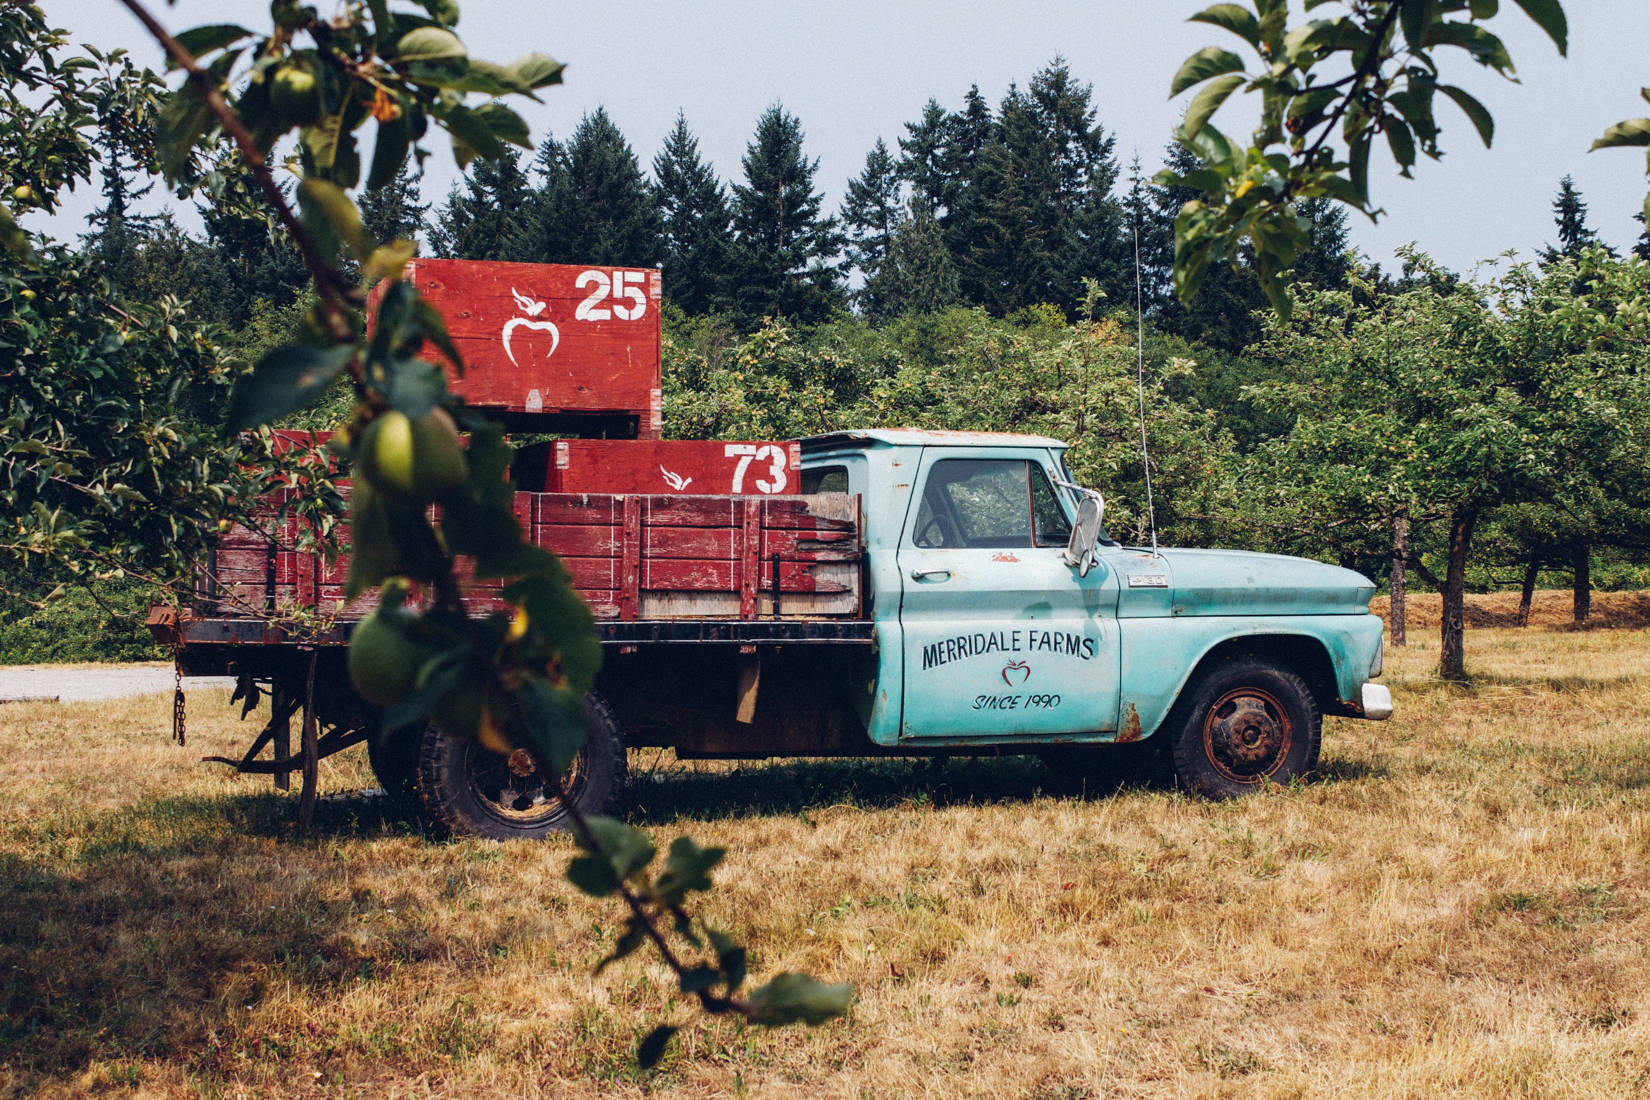 Merridale Cider is a larger cidery in the Greater Victoria Region, and pictured is a turquoise old pickup truck carrying crates for apples within the orchards.